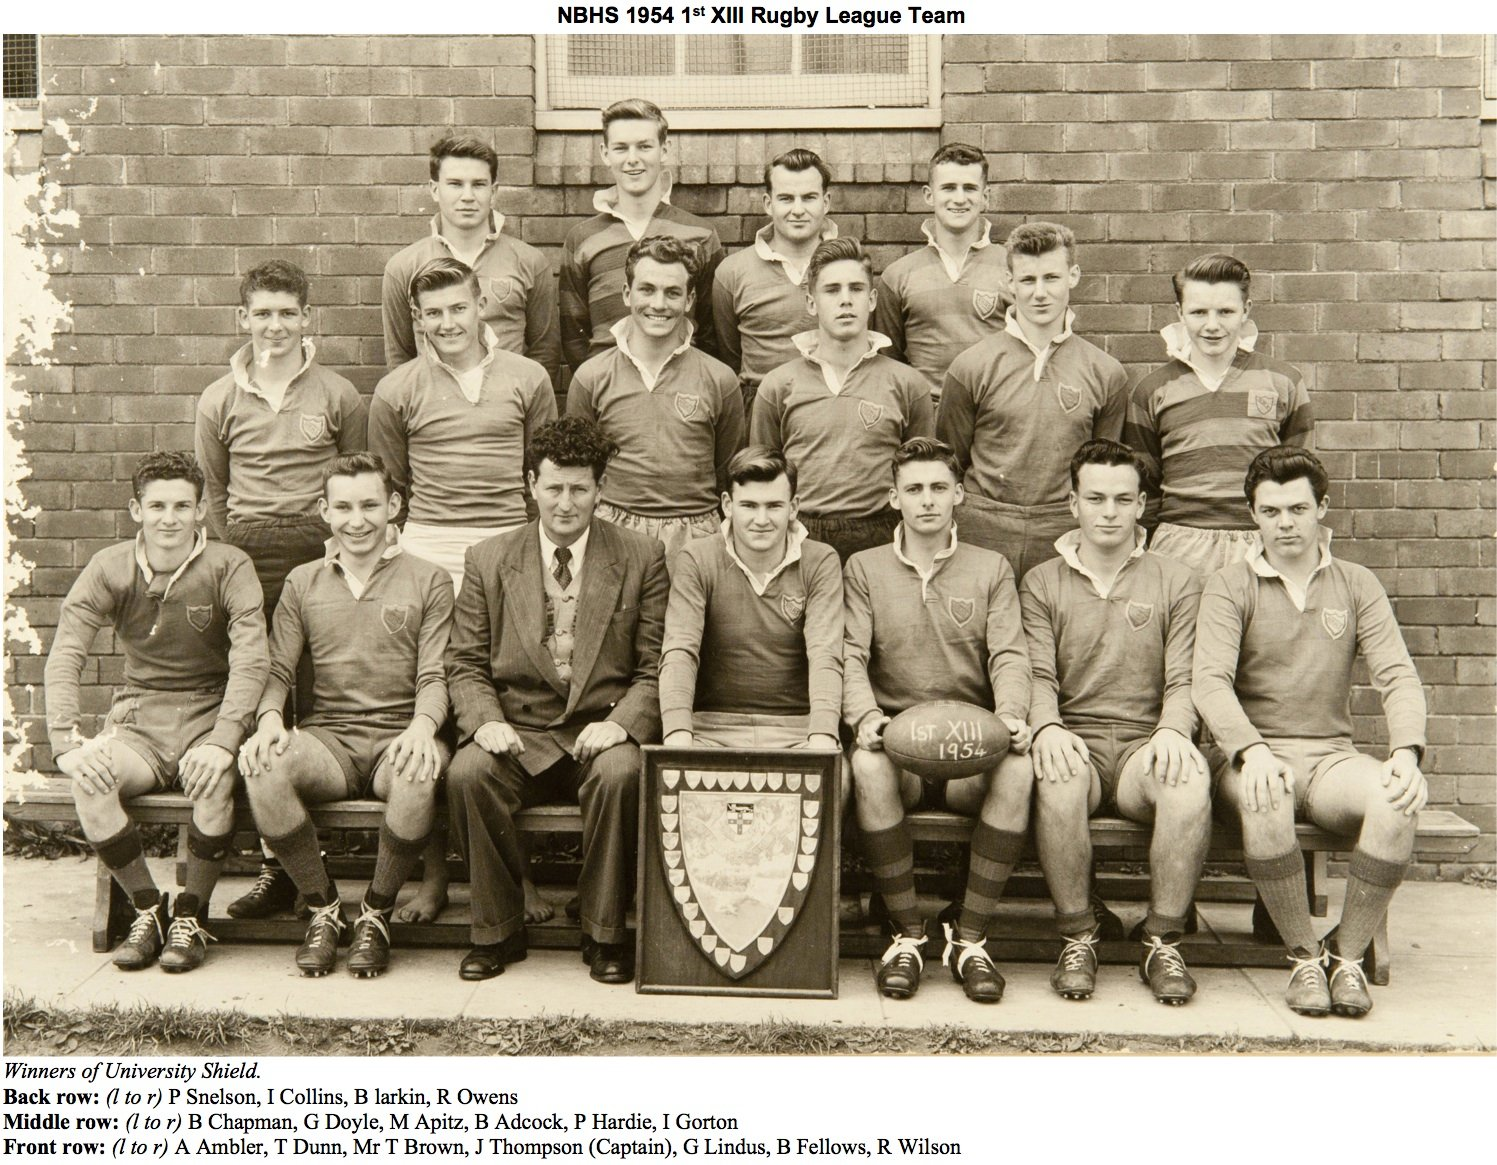 1954 1st Grade Rugby League